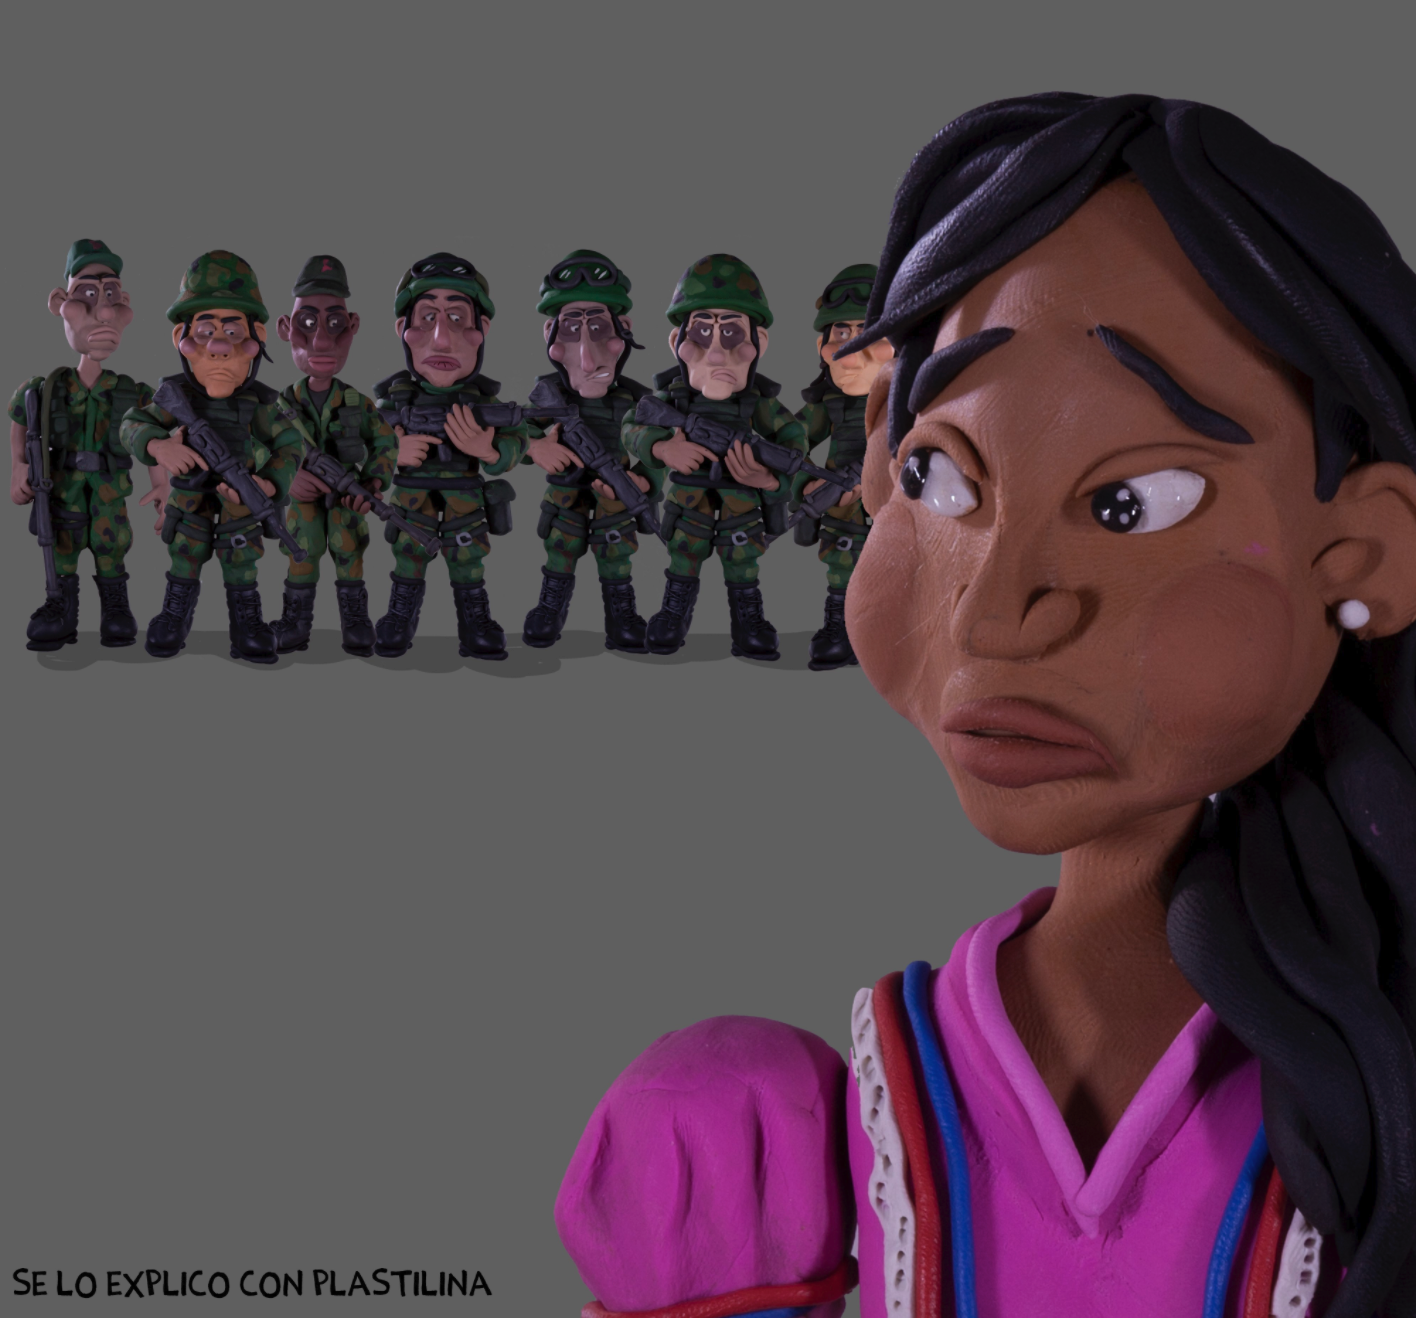 Clay model of a girl with black hair dressed in a purple shirt is  at the front right of the image. She is looking back warily at 7 male soldiers dressed in green camoflauge holding guns.